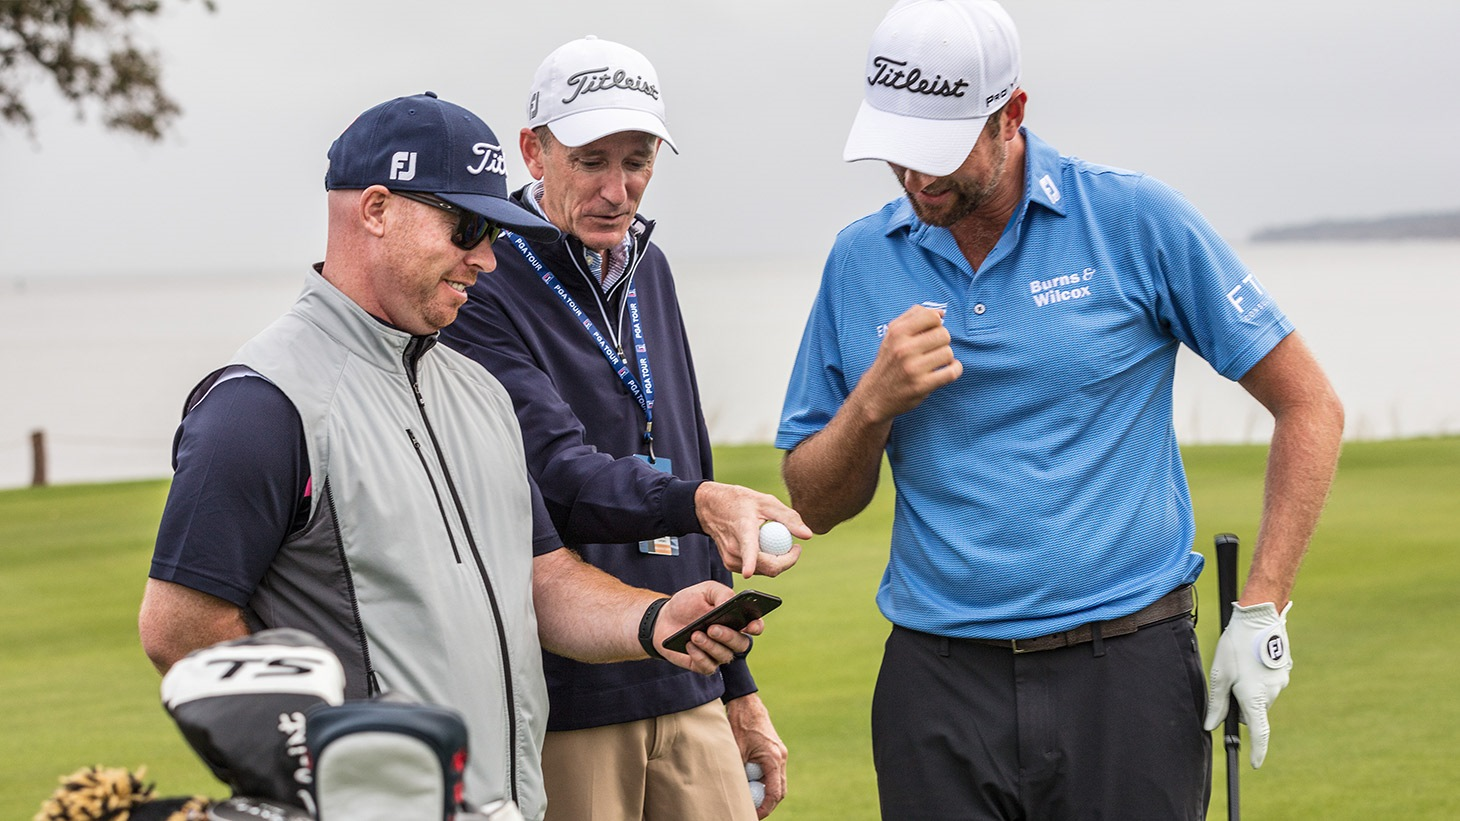 JJ Van Wiesenbeeck, Fordie Pitts and Webb Simpson discuss launch data during a golf ball fitting session at the 2019 RSM Classic